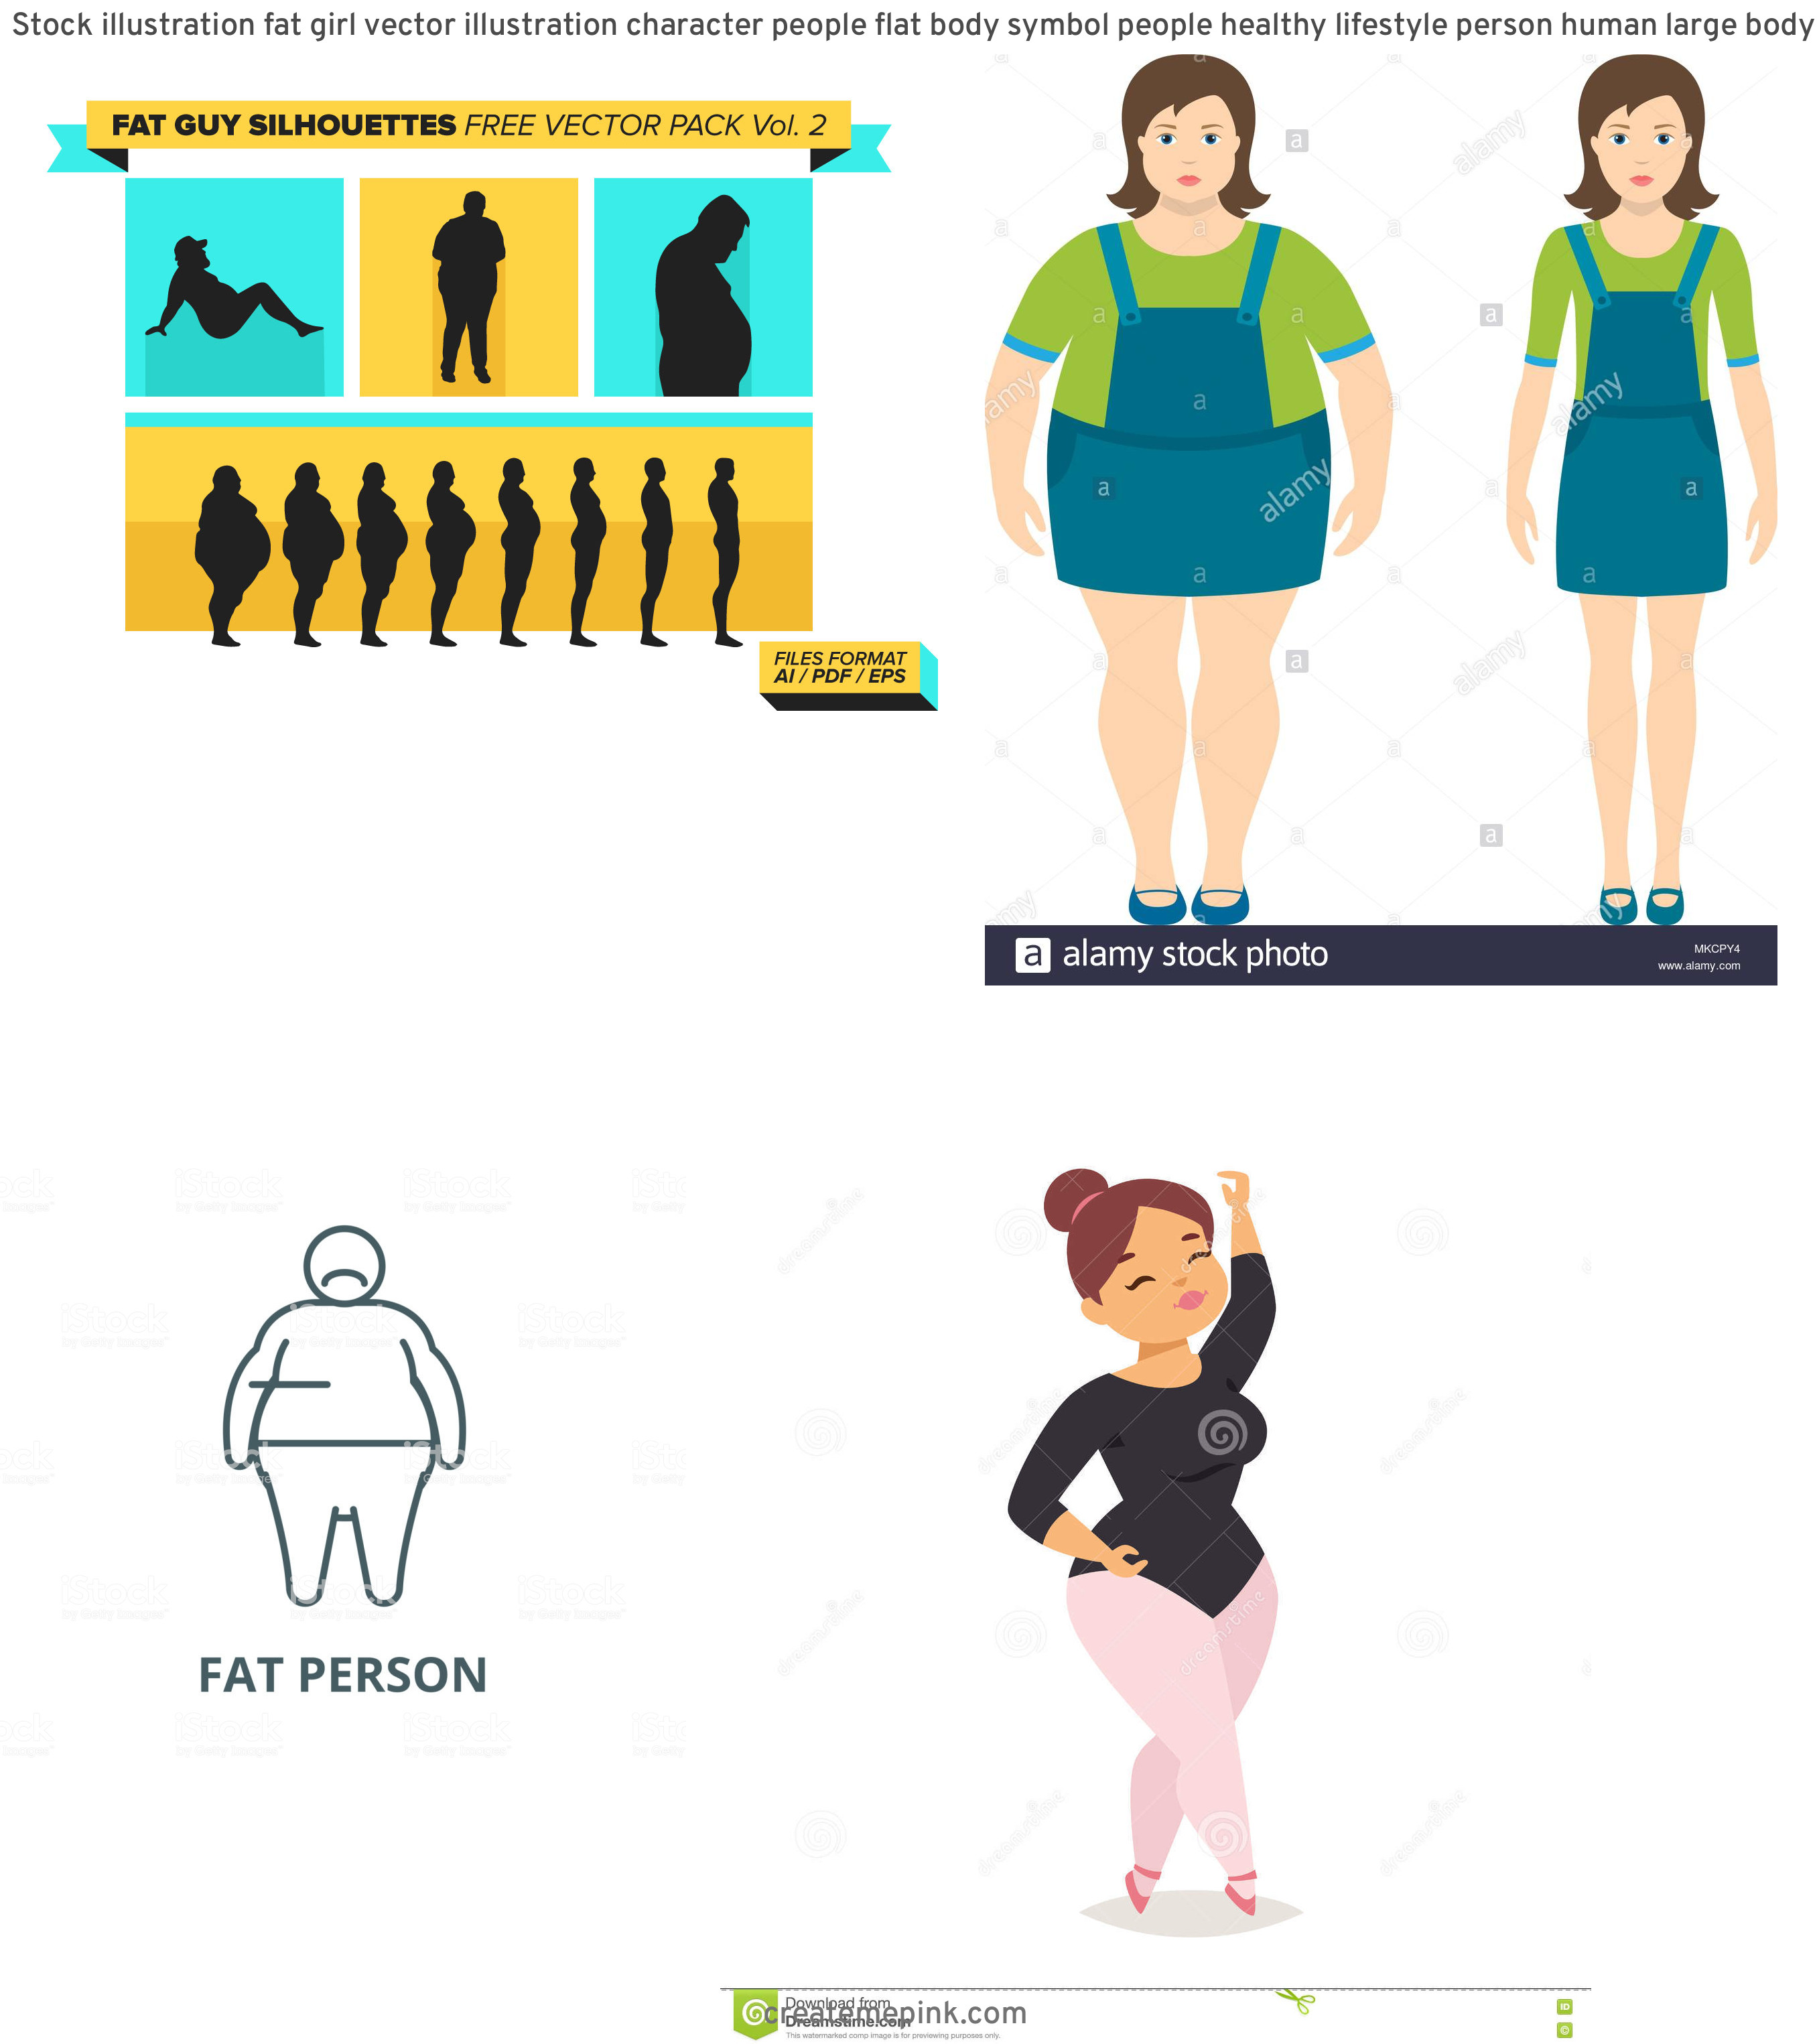 People Silhouette Vector Illustration Of Fat: Stock Illustration Fat Girl Vector Illustration Character People Flat Body Symbol People Healthy Lifestyle Person Human Large Body Image